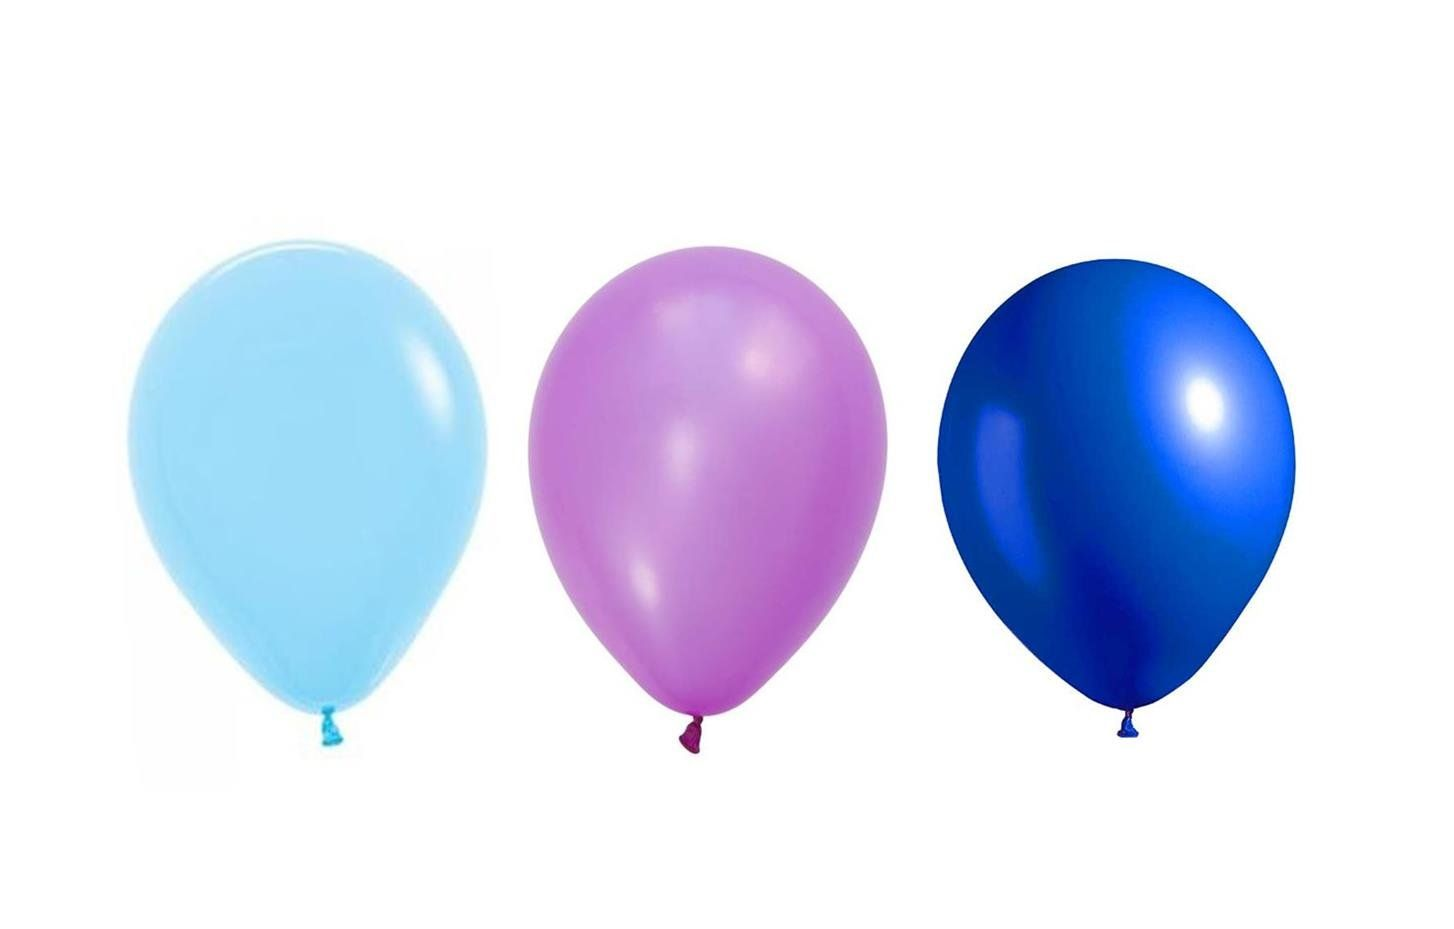 510 Baby Light Blue Purple And Dark Blue 12 Party Balloons Pear Shaped Bulk Wholesale Lot Check Out The Image By Visiting Party Balloons Balloons Babylights